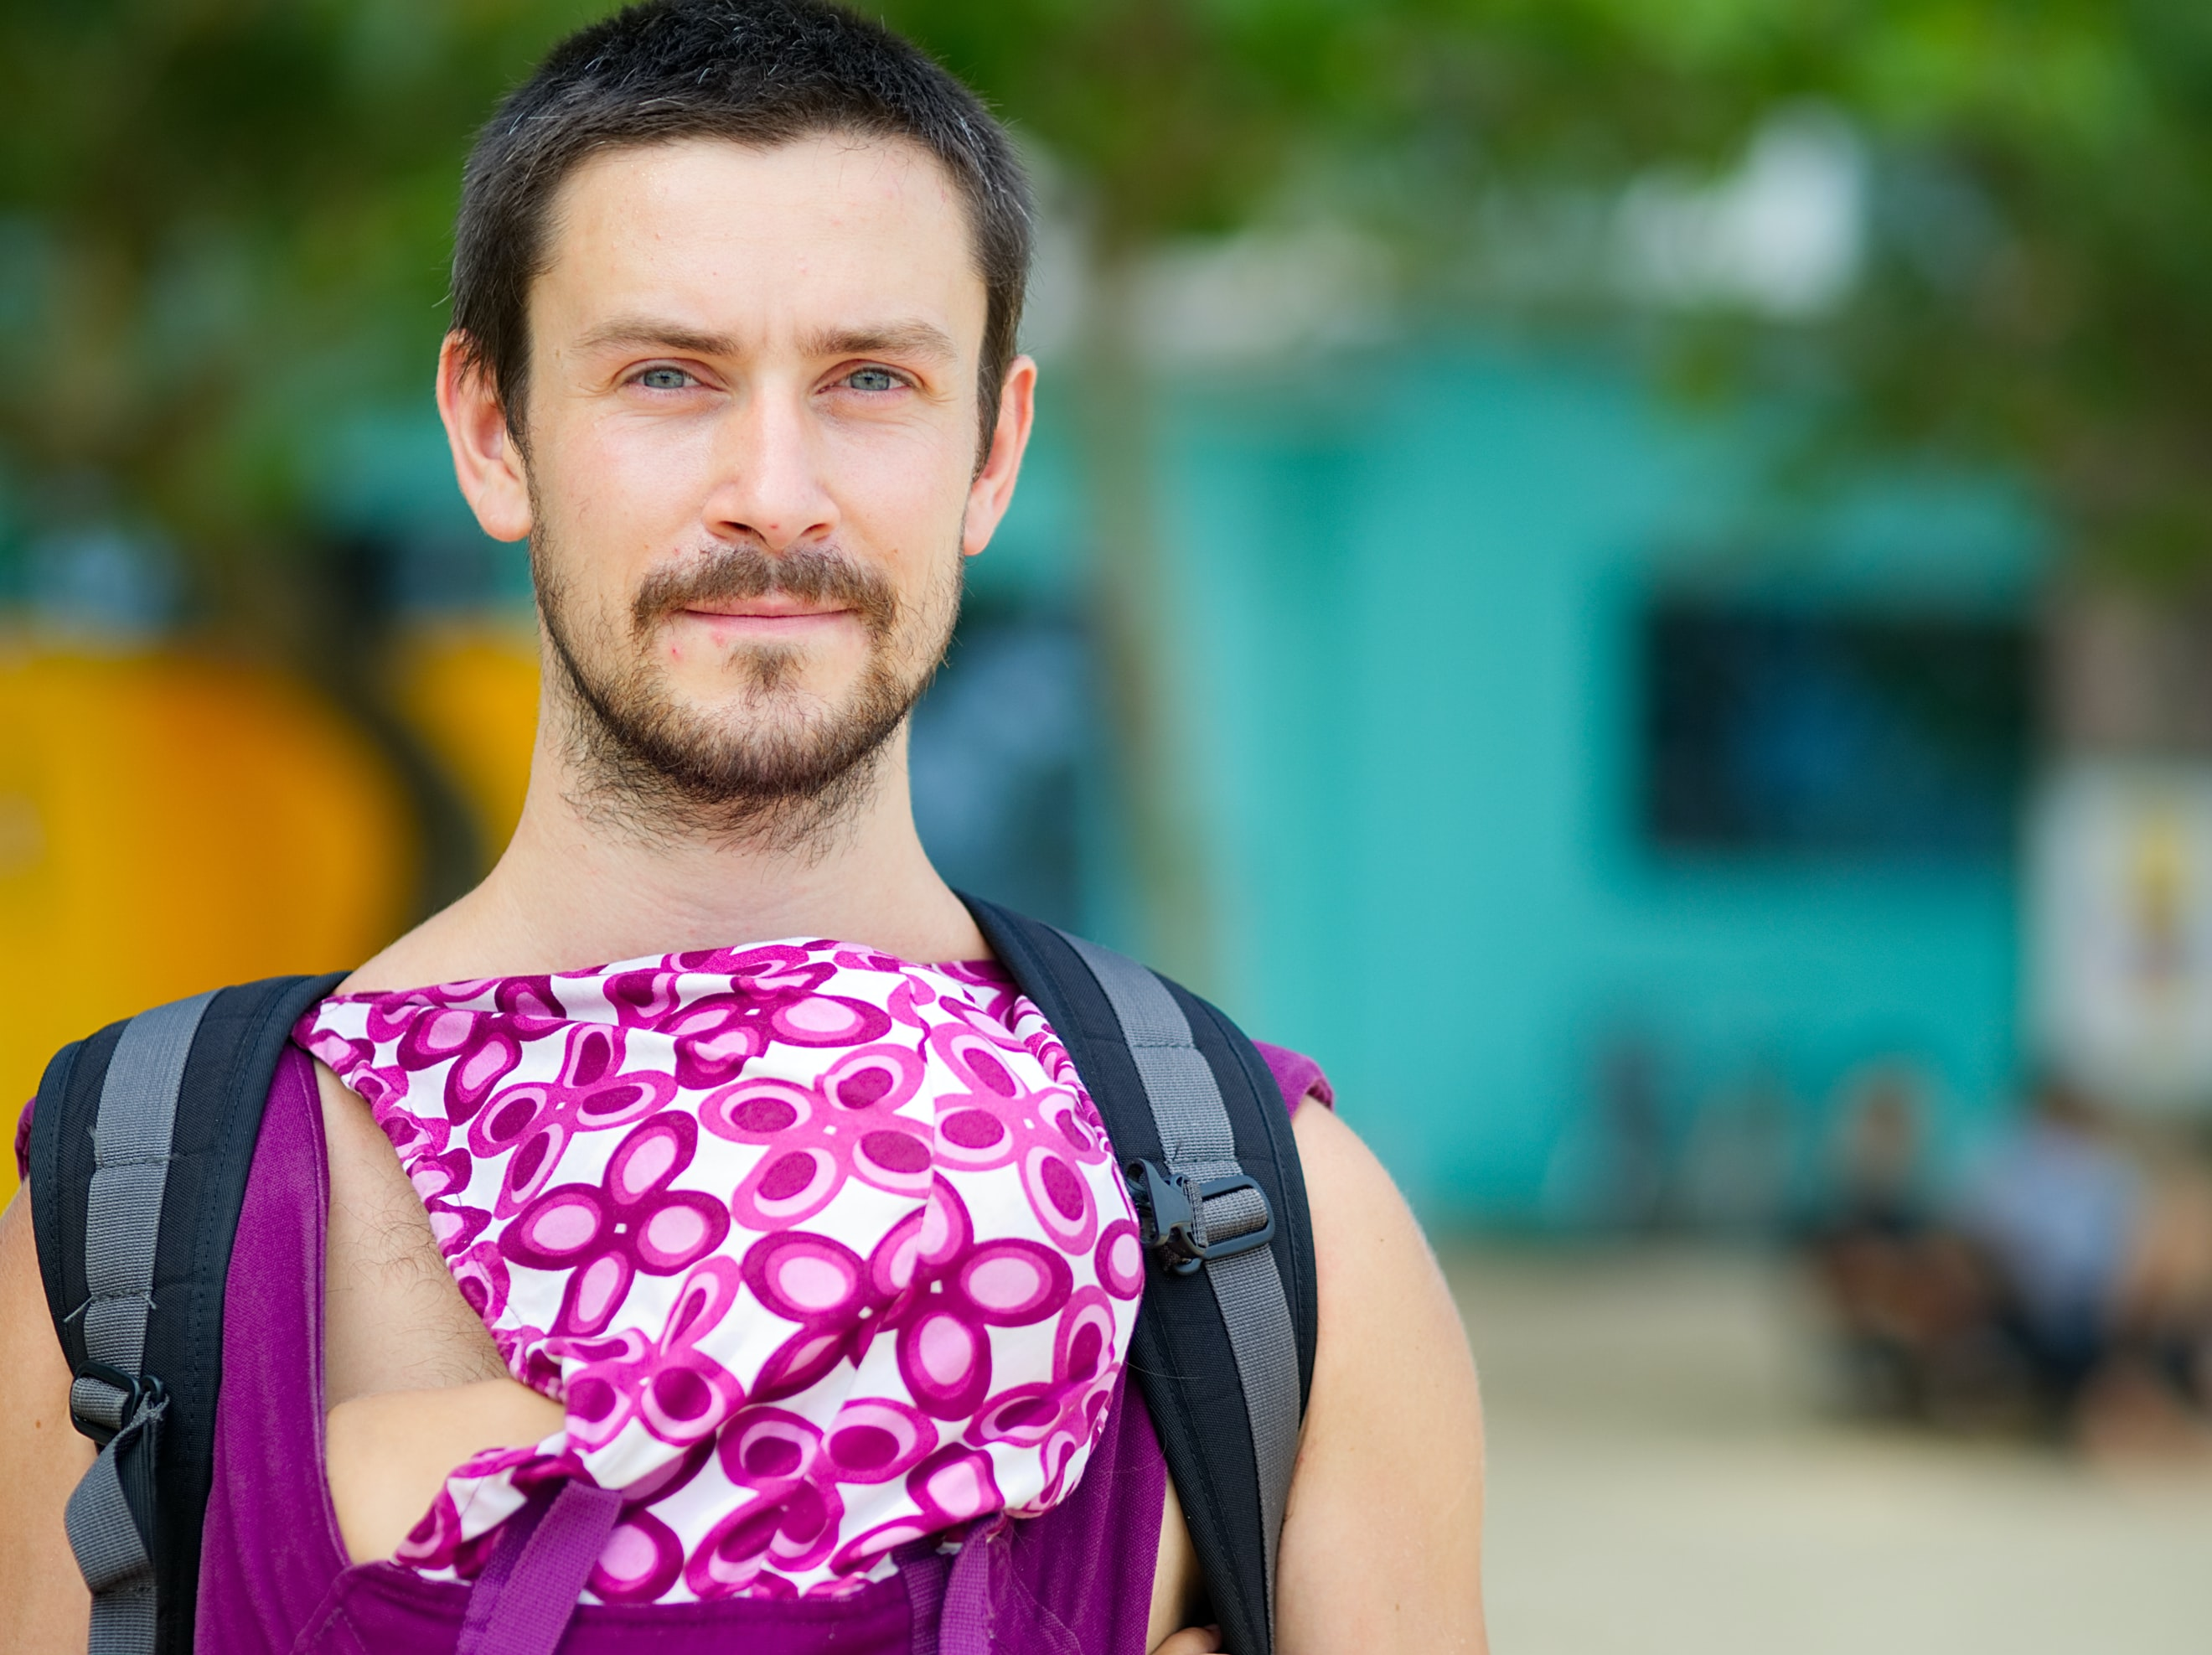 selective focus closeup photography of man in purple and white floral sleeveless shirt and black-and-gray backpack